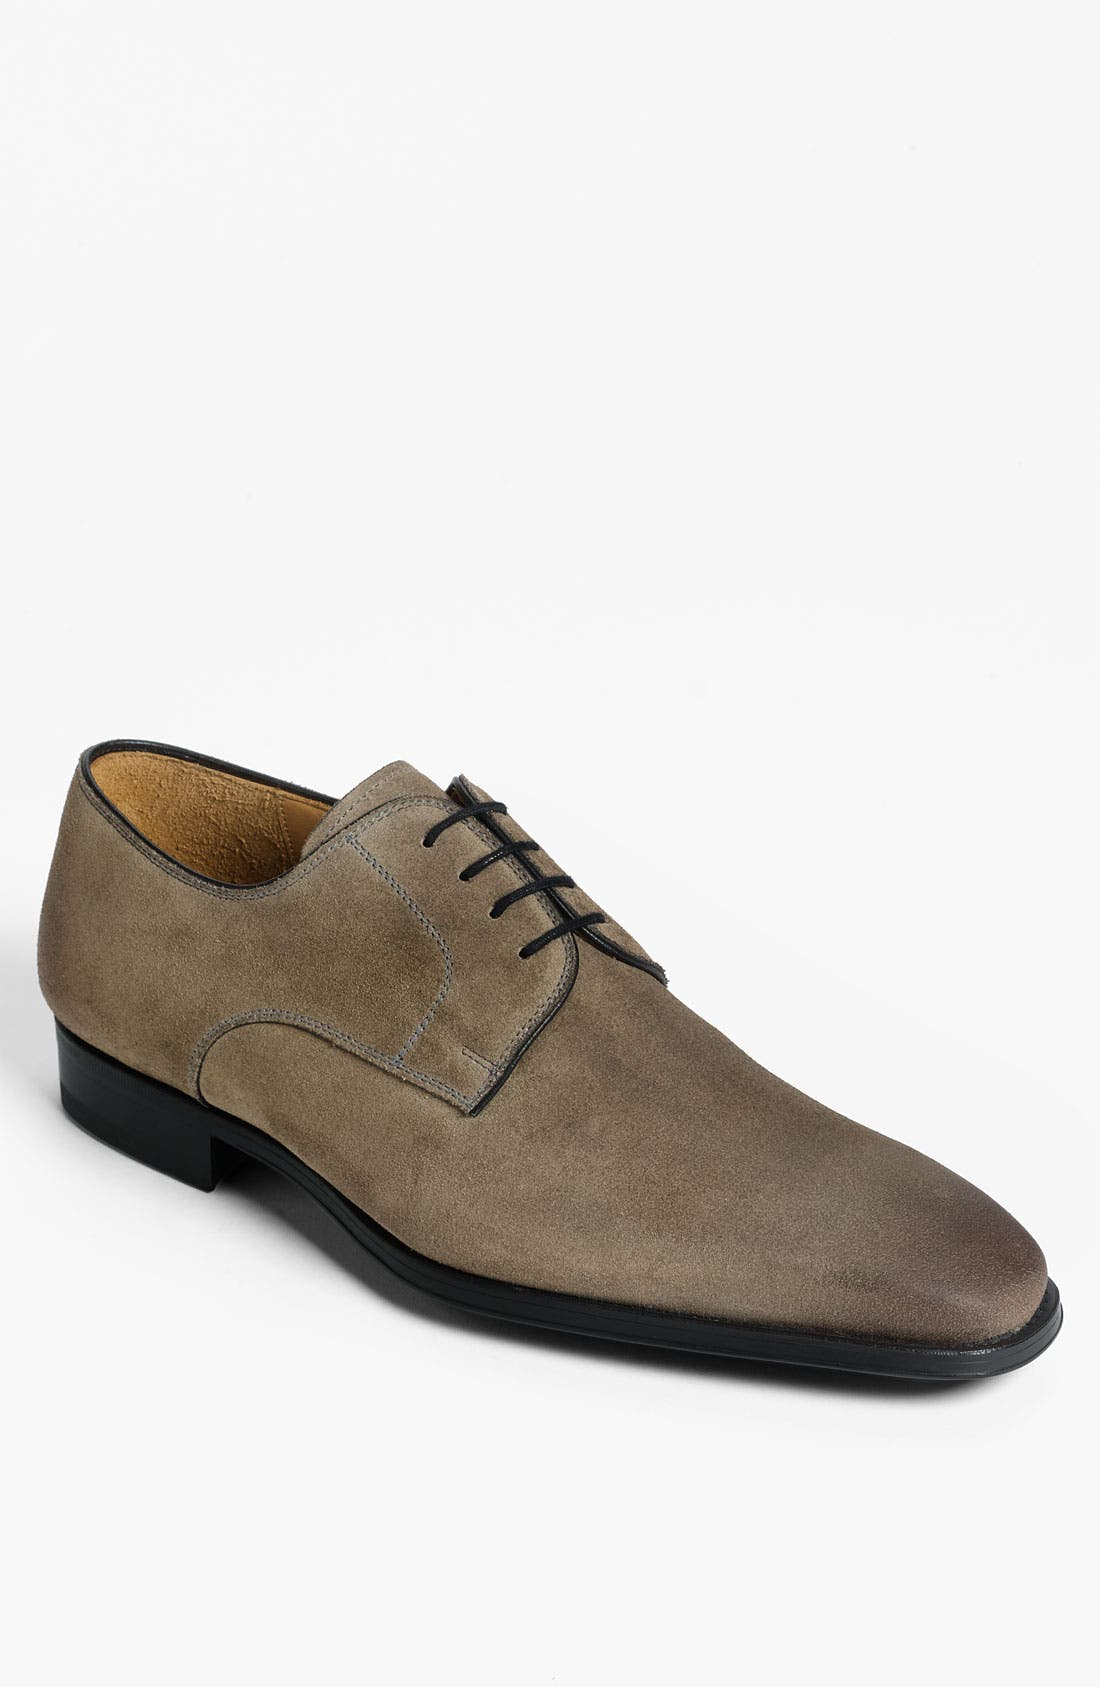 Alternate Image 1 Selected - Magnanni 'Dino' Suede Buck Shoe